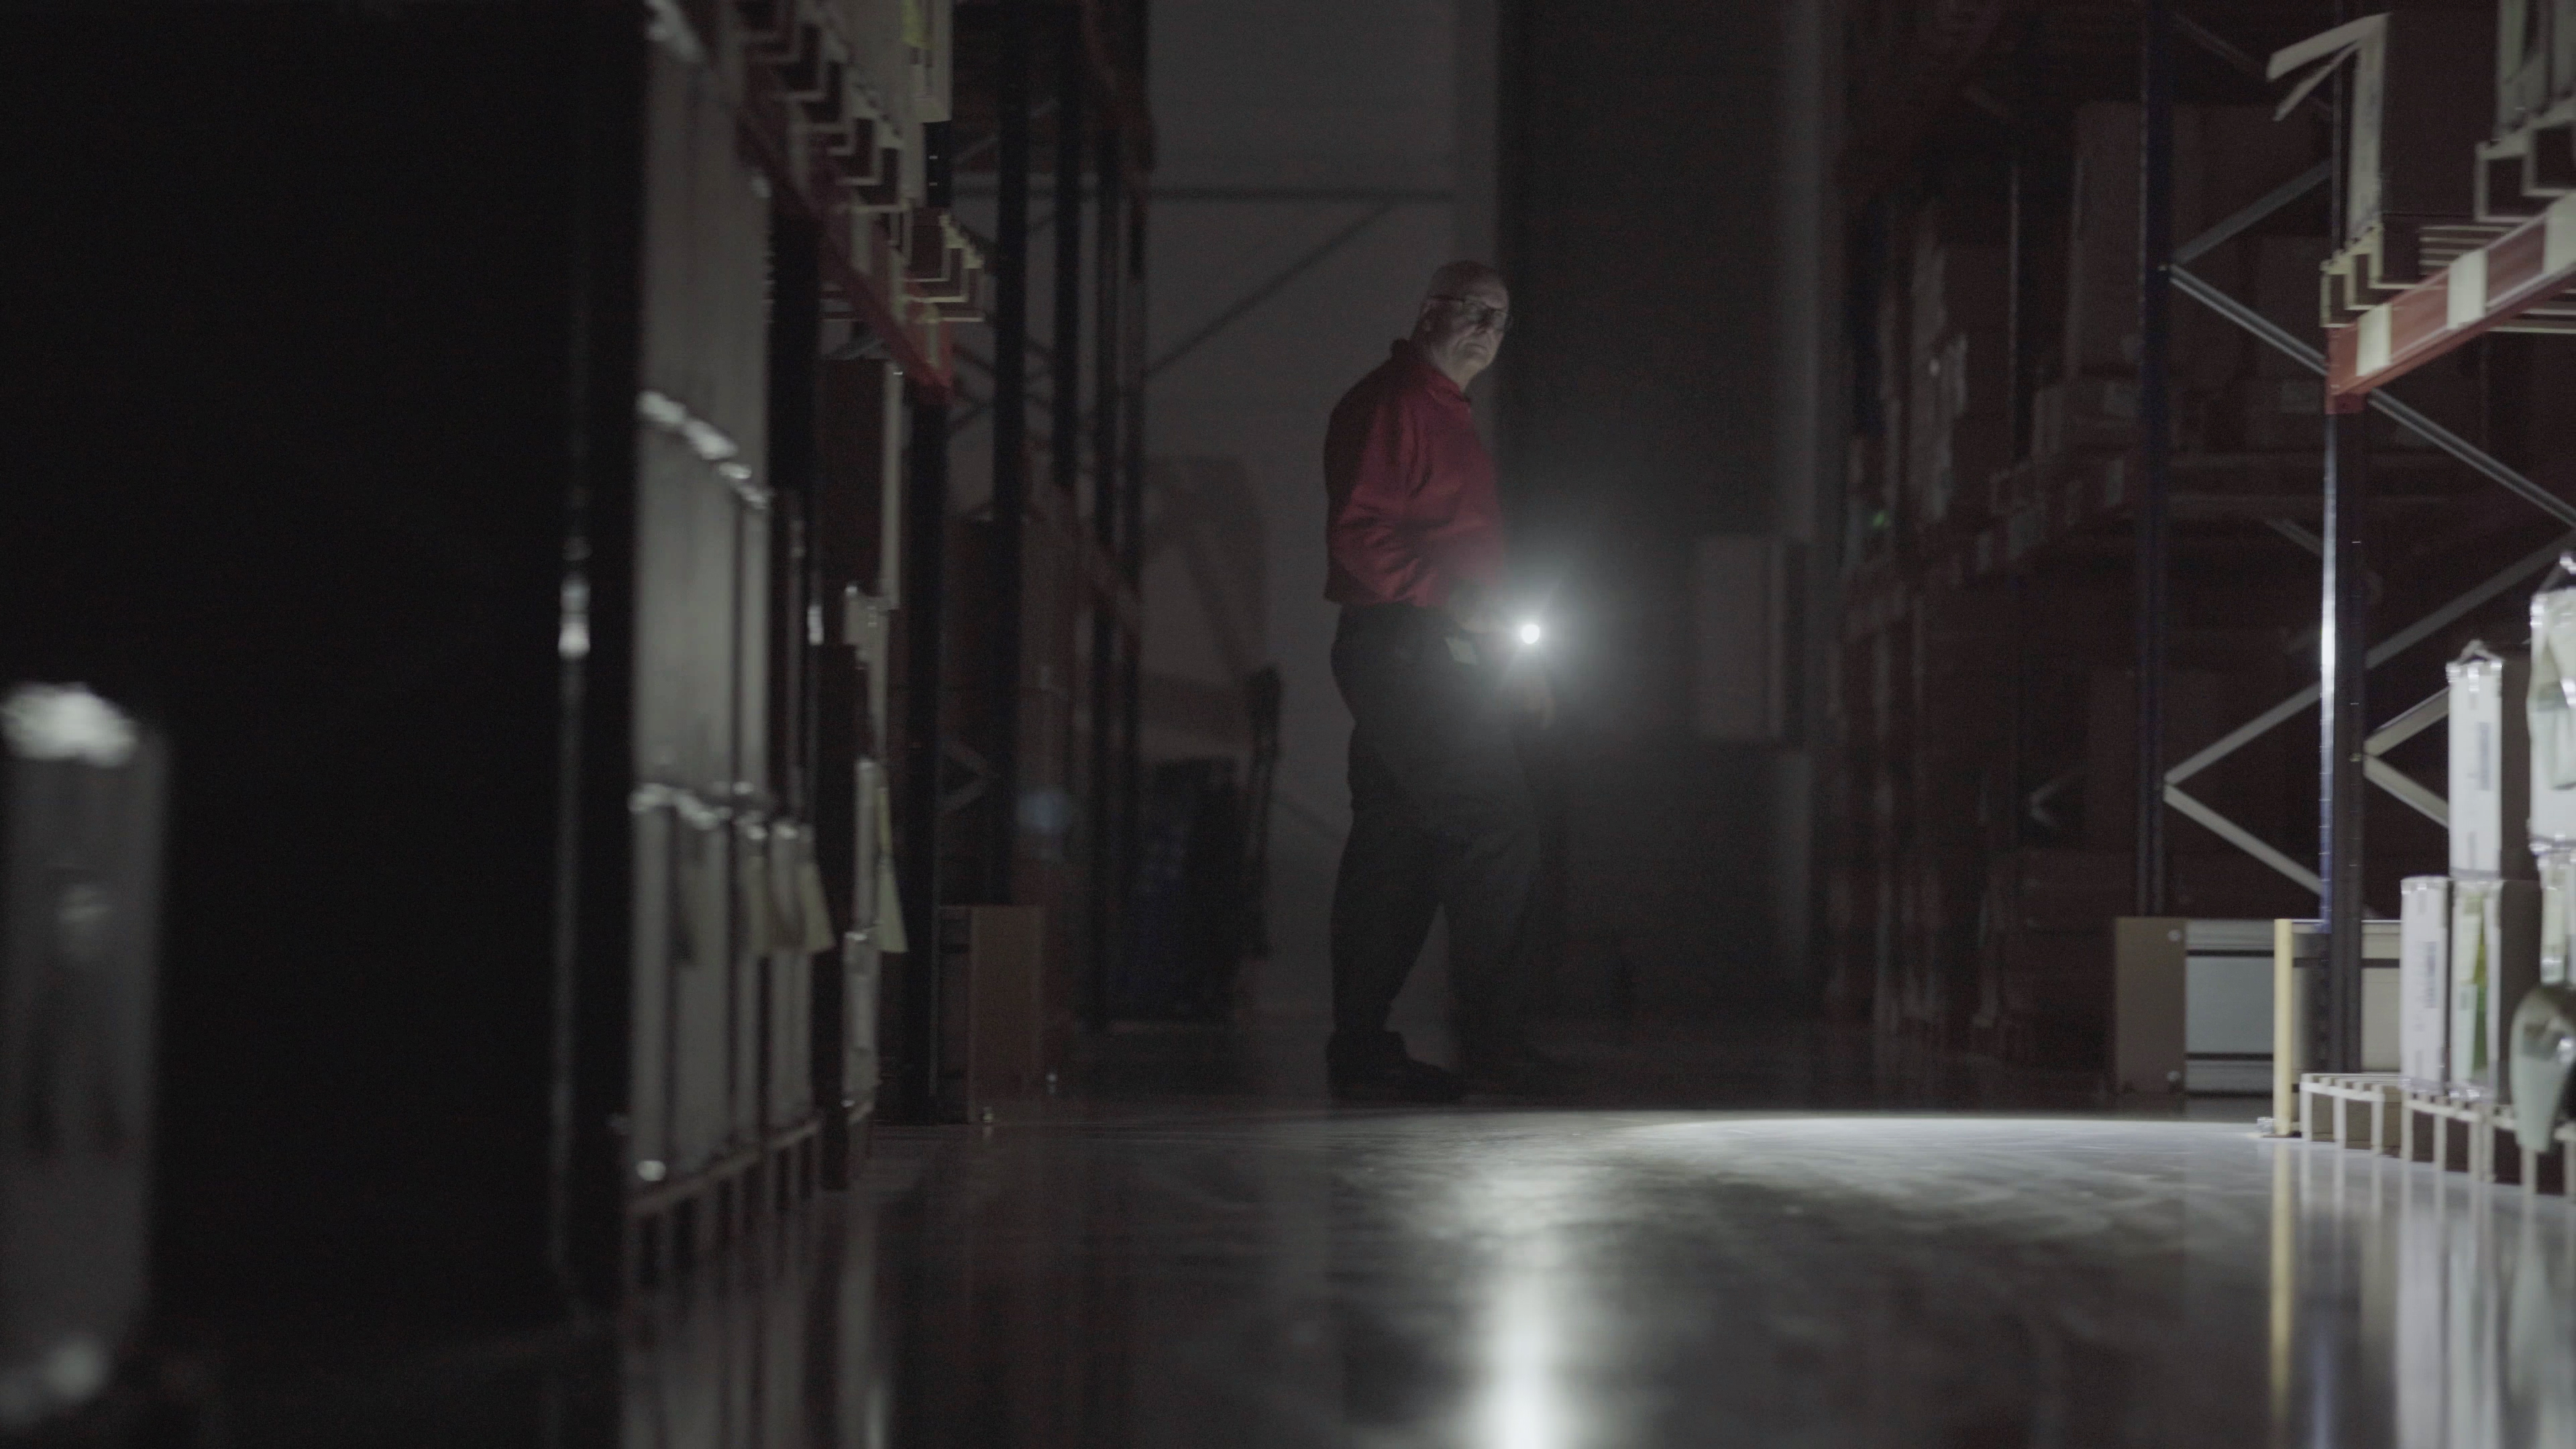 Security guard inspecting warehouse at night